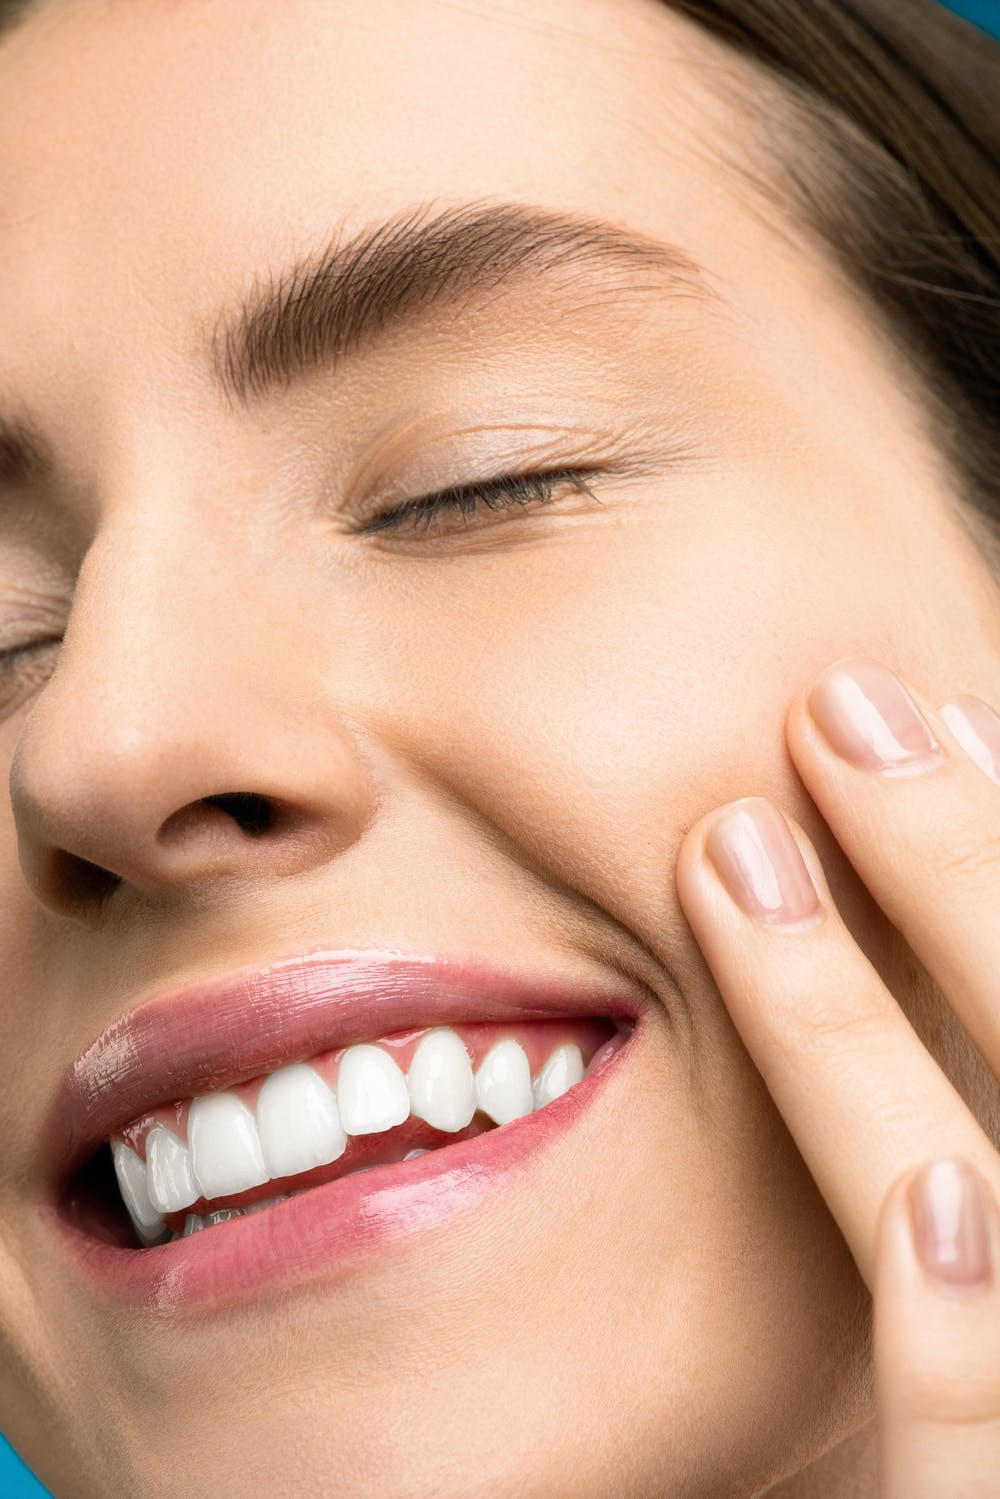 Advanced Dental Wellness of Ft lauderdale -Smiling tooth pain pic